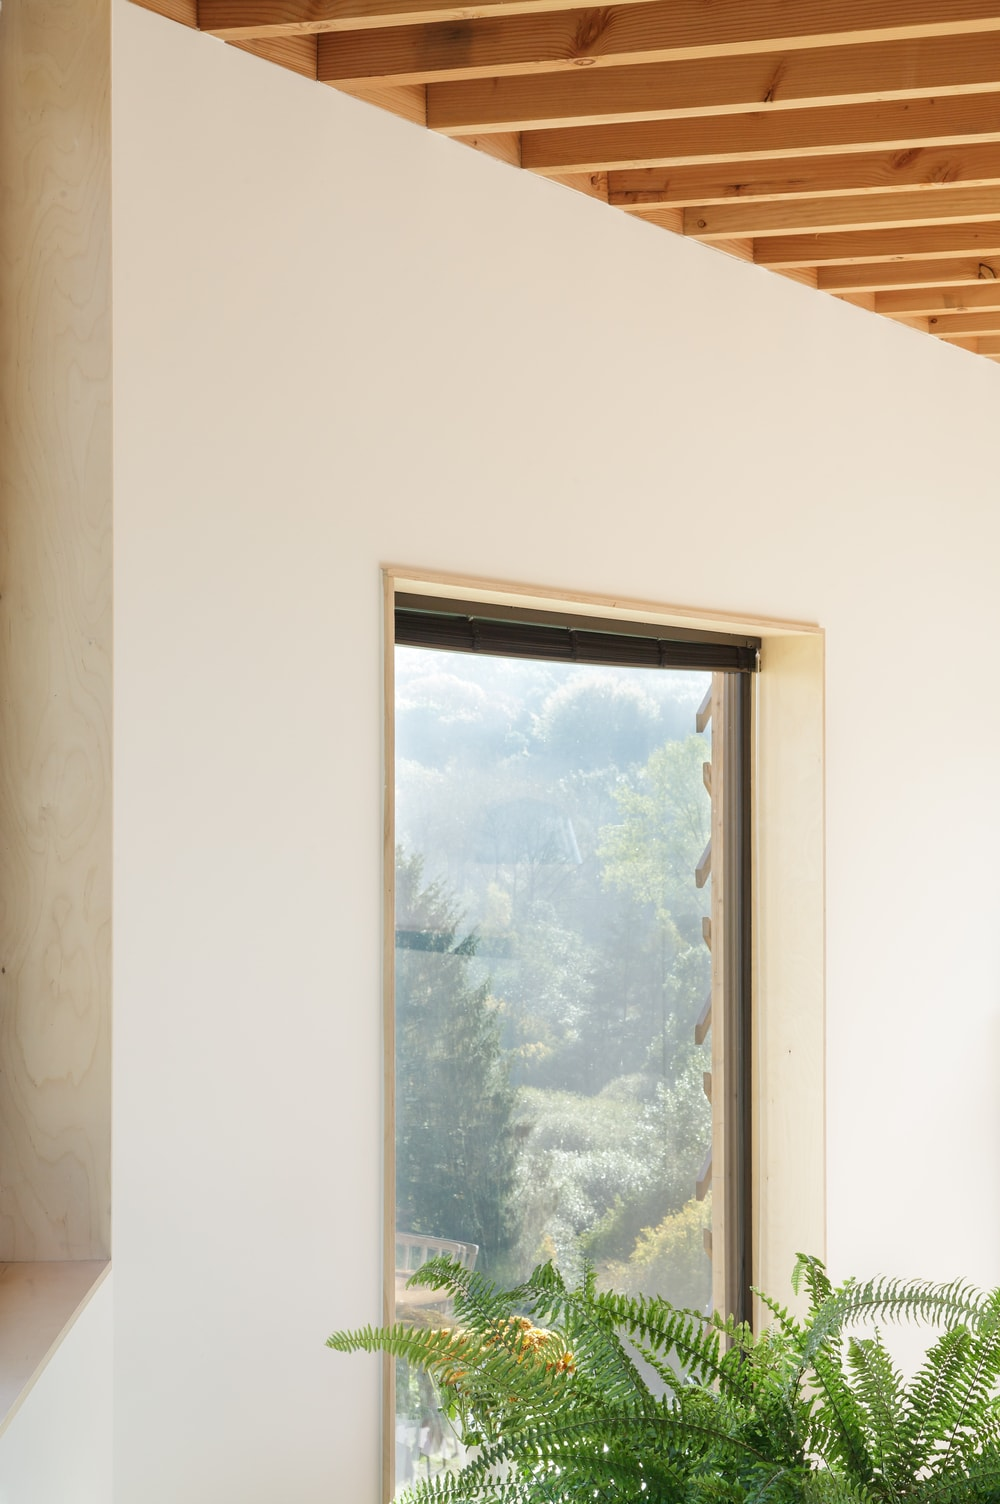 This is a close look at one of the glass windows that stand out against the surrounding beige walls and wooden beamed ceiling.